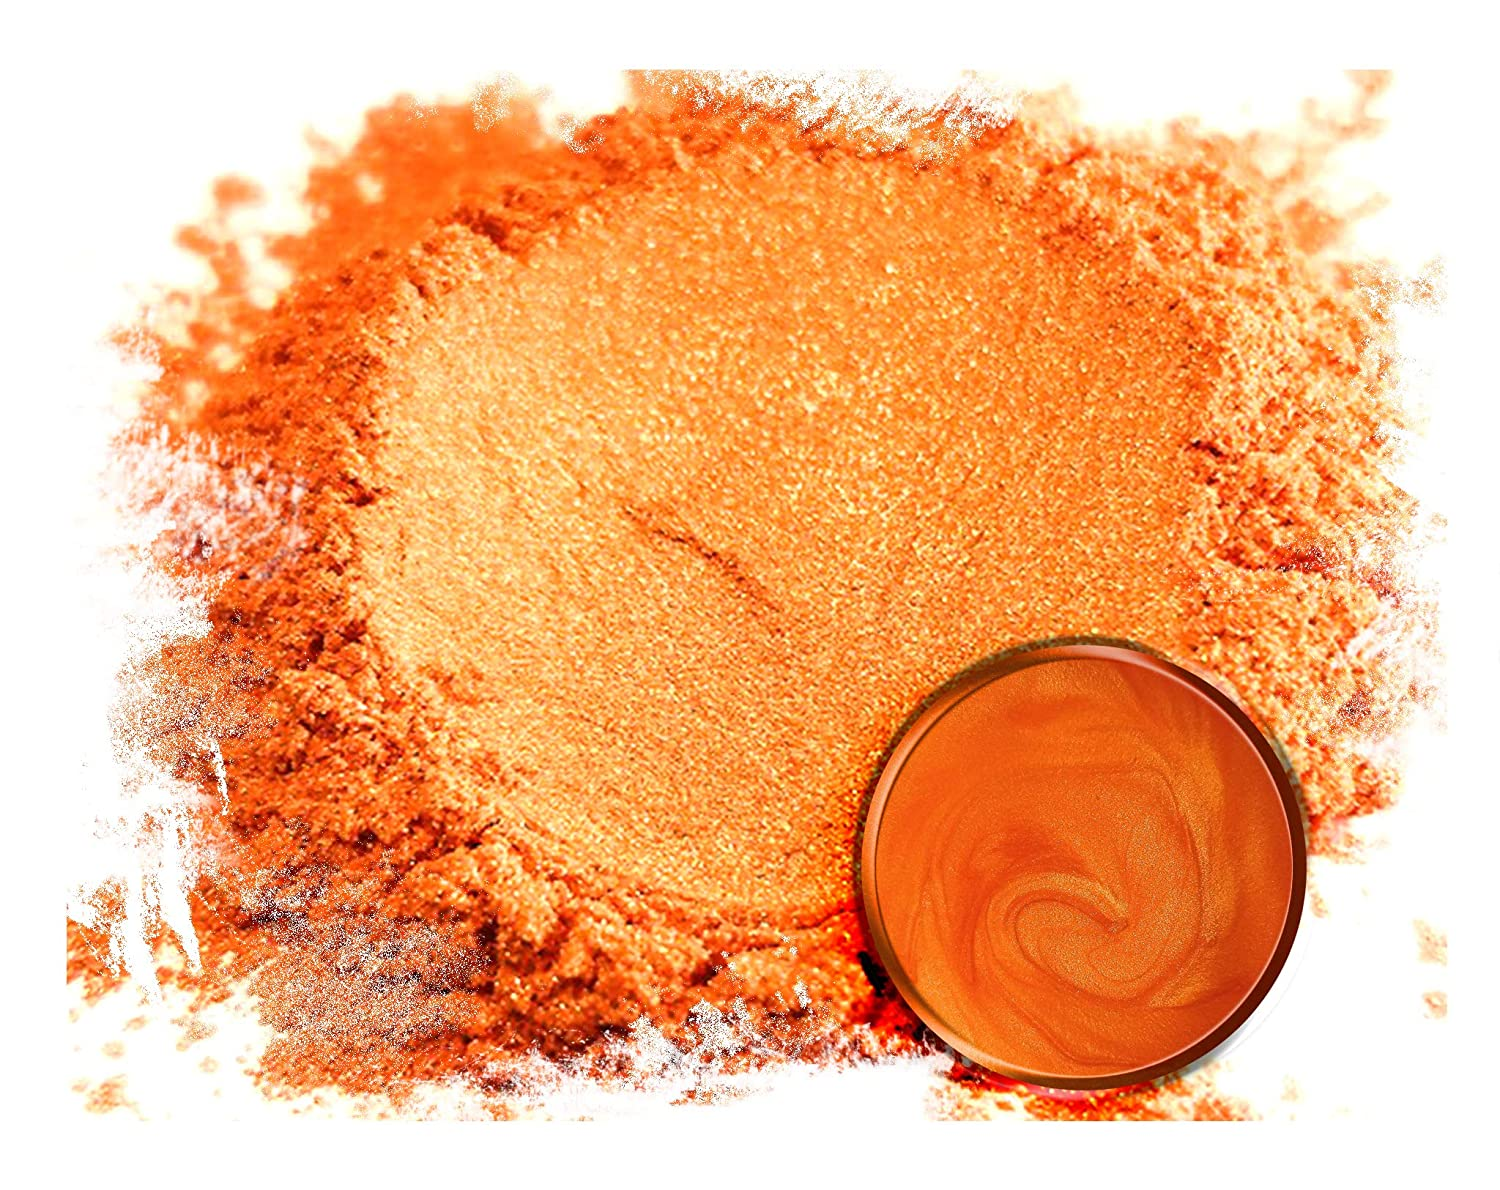 Eye Candy Mica Powder PigmentRainbow Orange (50g) Multipurpose DIY Arts and Crafts Additive | Natural Bath Bombs, Resin, Paint, Epoxy, Soap, Nail Polish, Lip Balm Eye Candy Customz